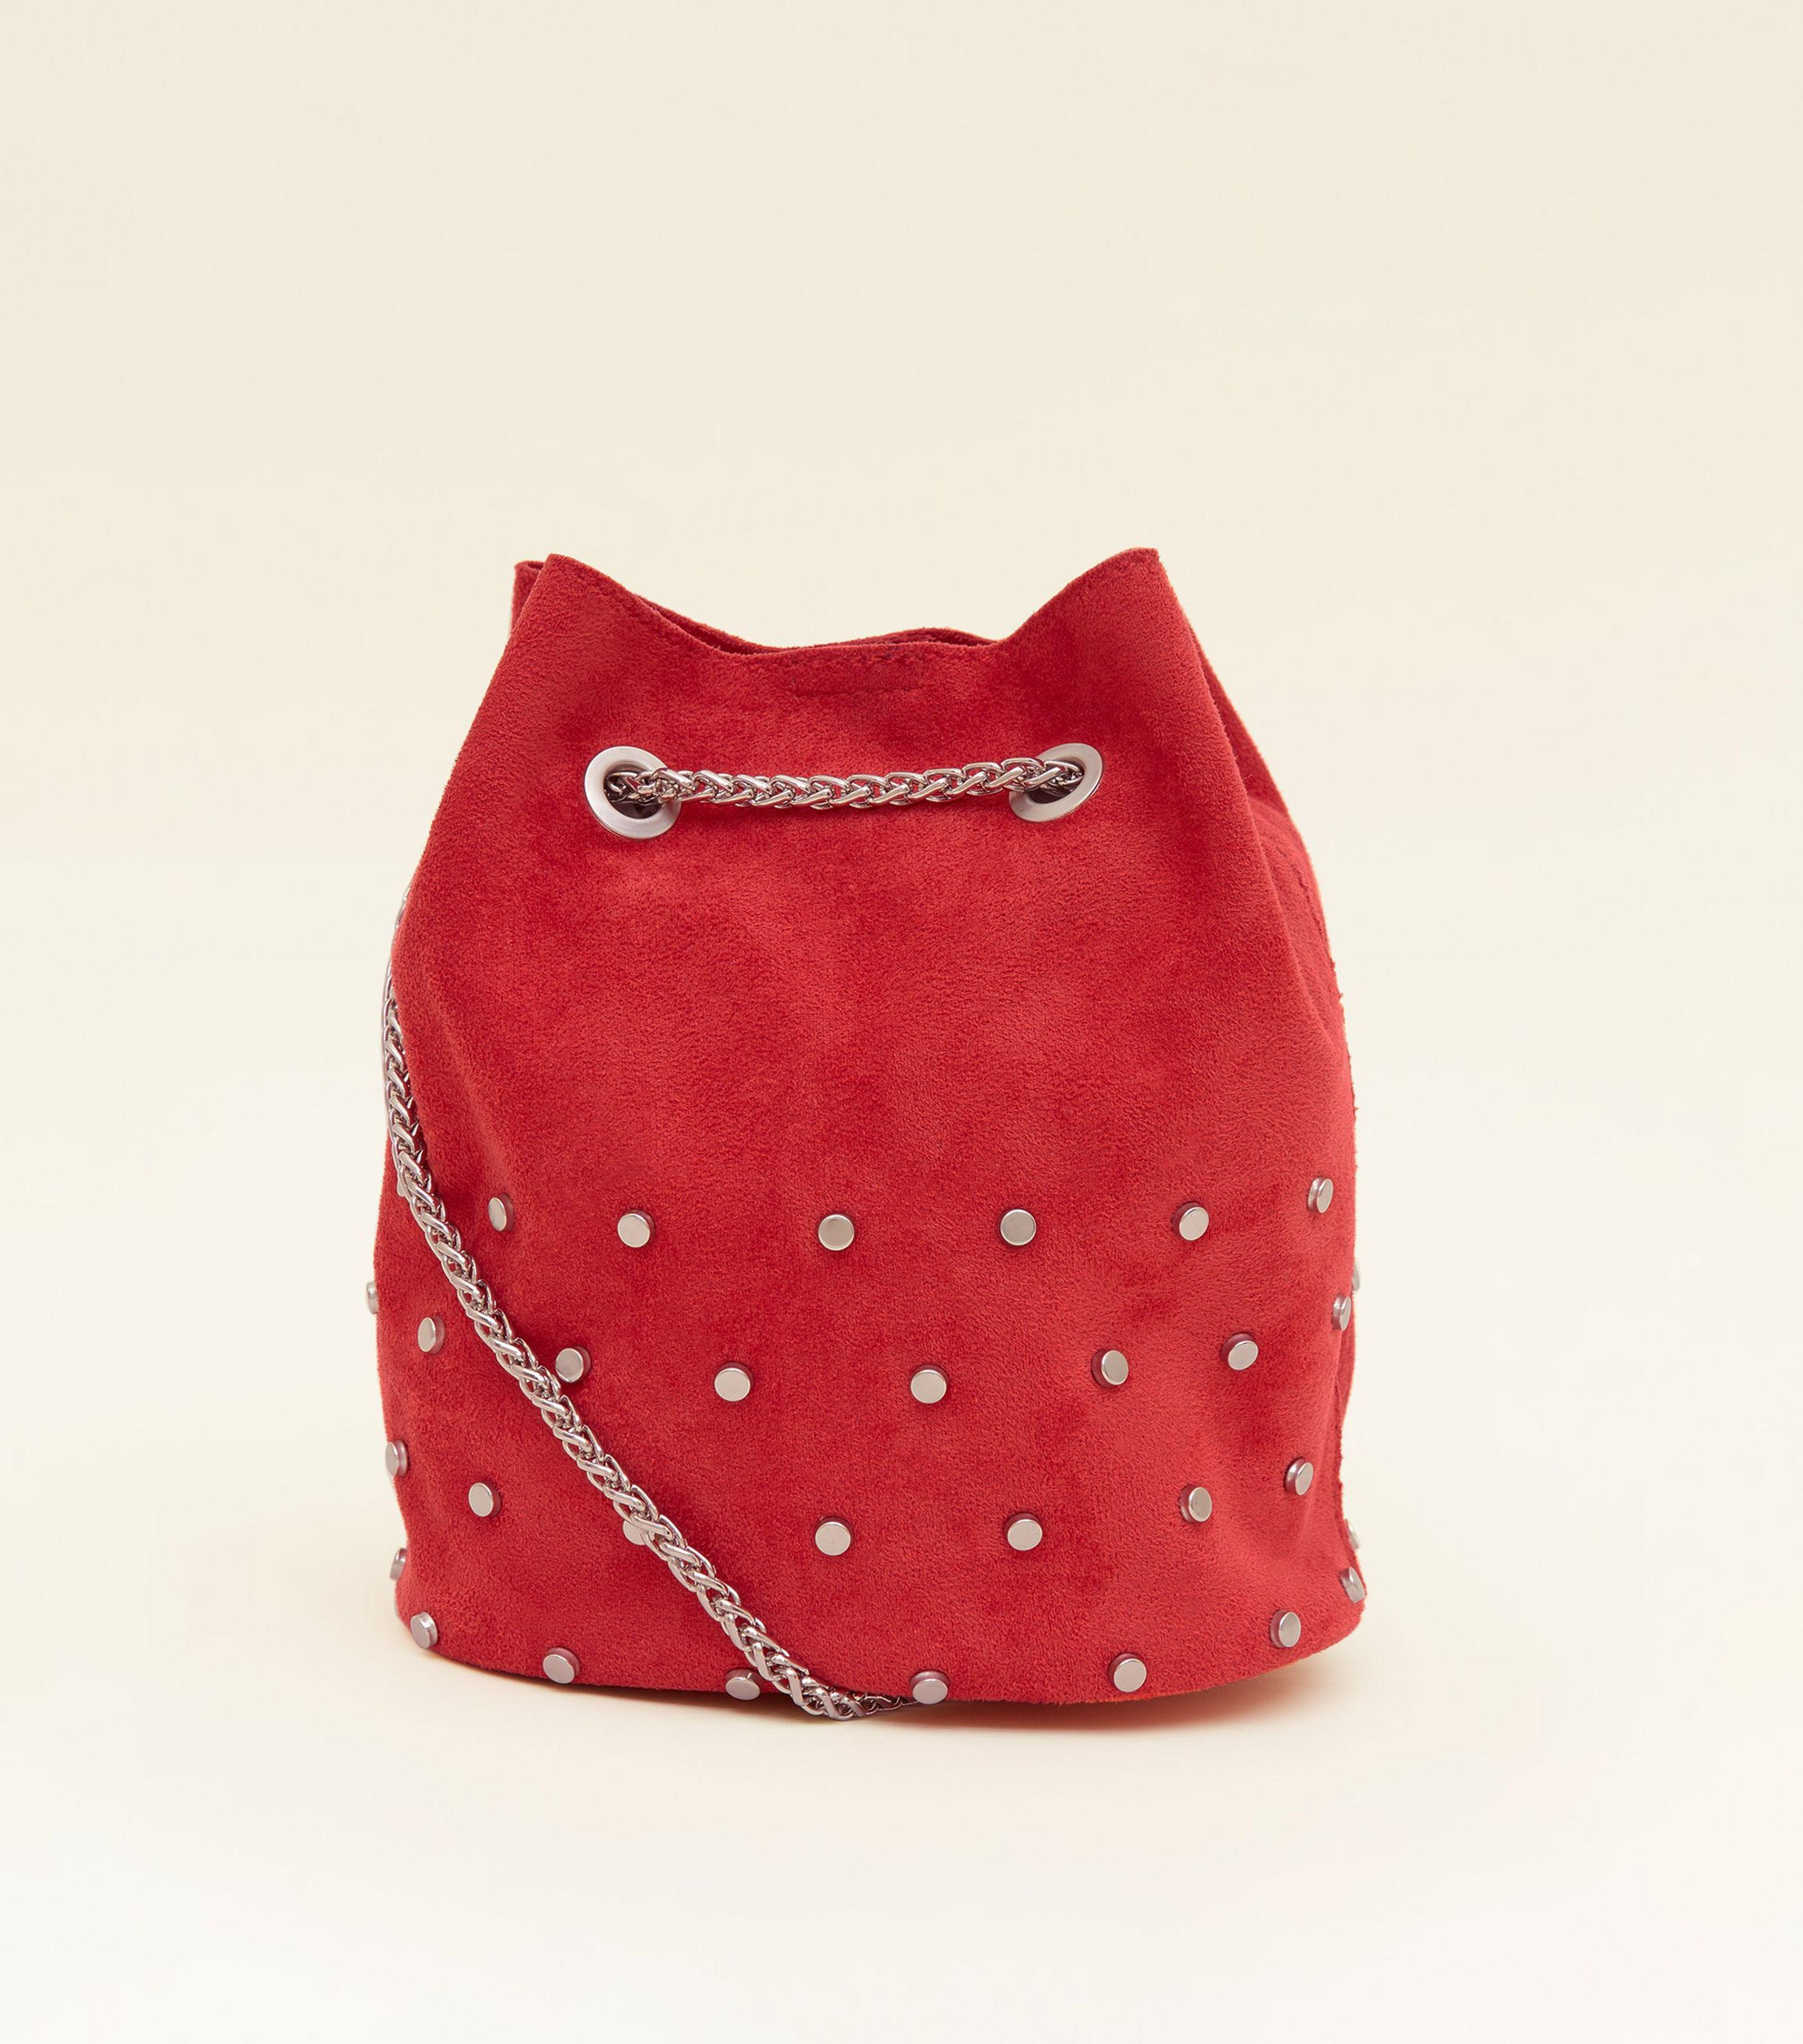 86a346d36 New Look Red Suedette Studded Mini Duffle Bag in Red - Lyst